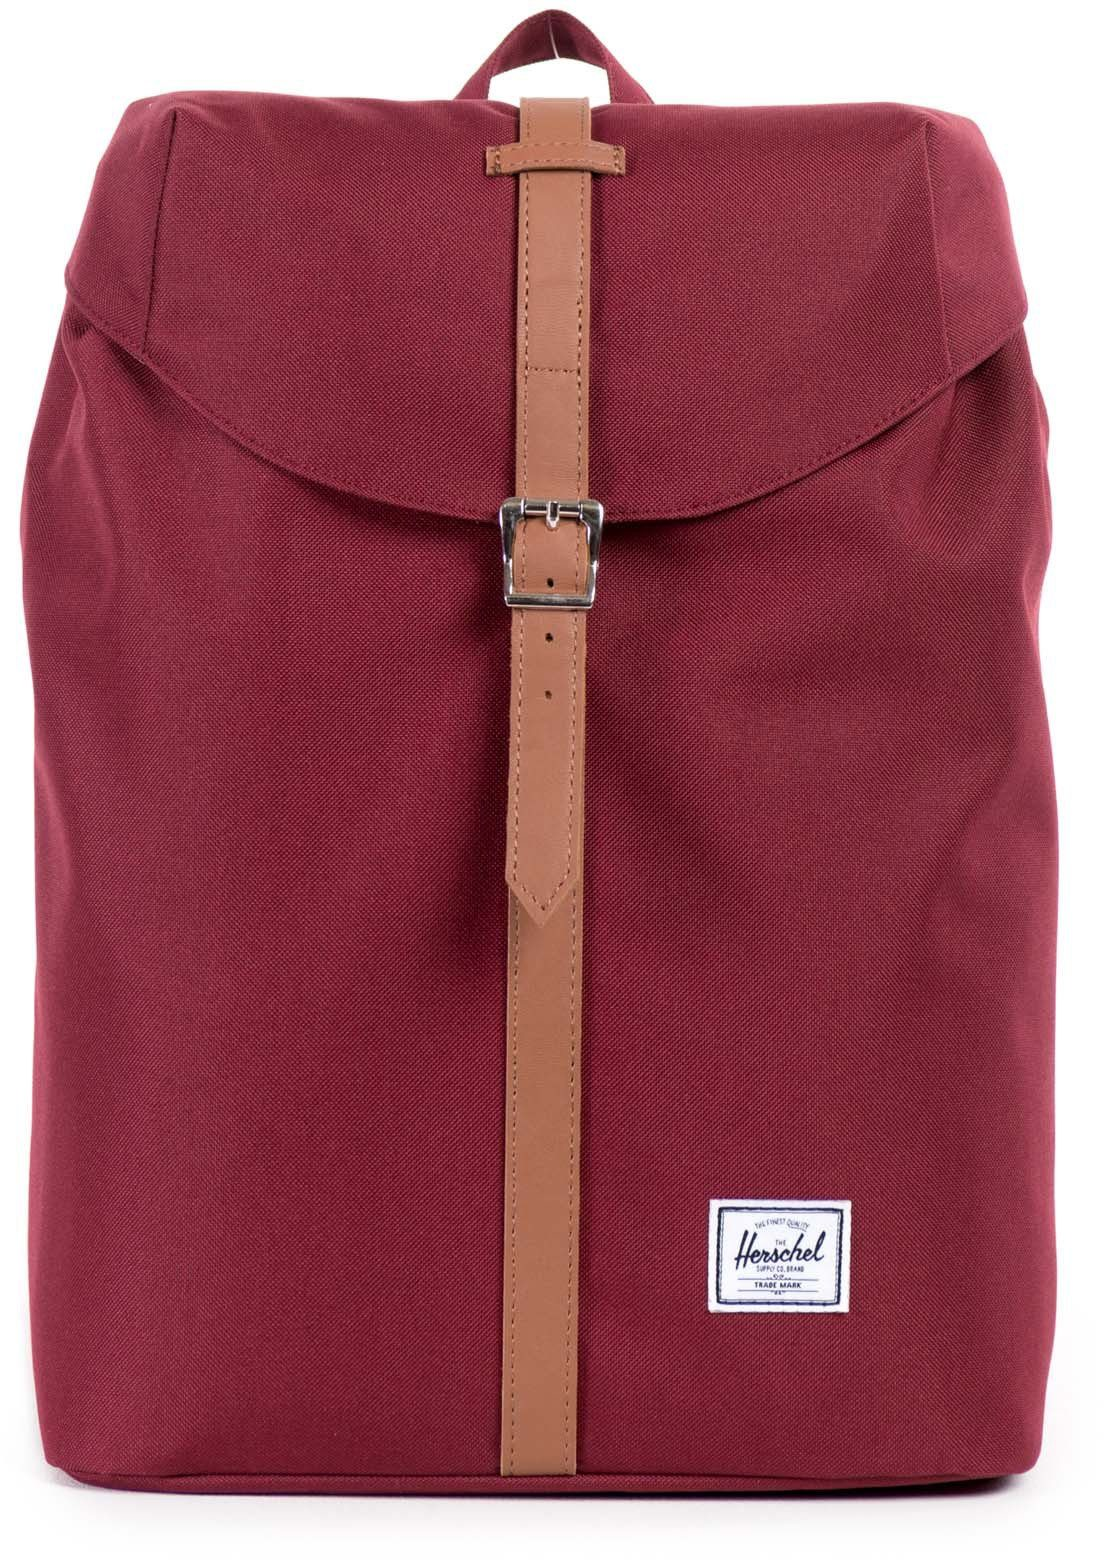 Herschel Rucksack mit Laptopfach, »Post Backpack, Windsor Wine, Mid Volume«